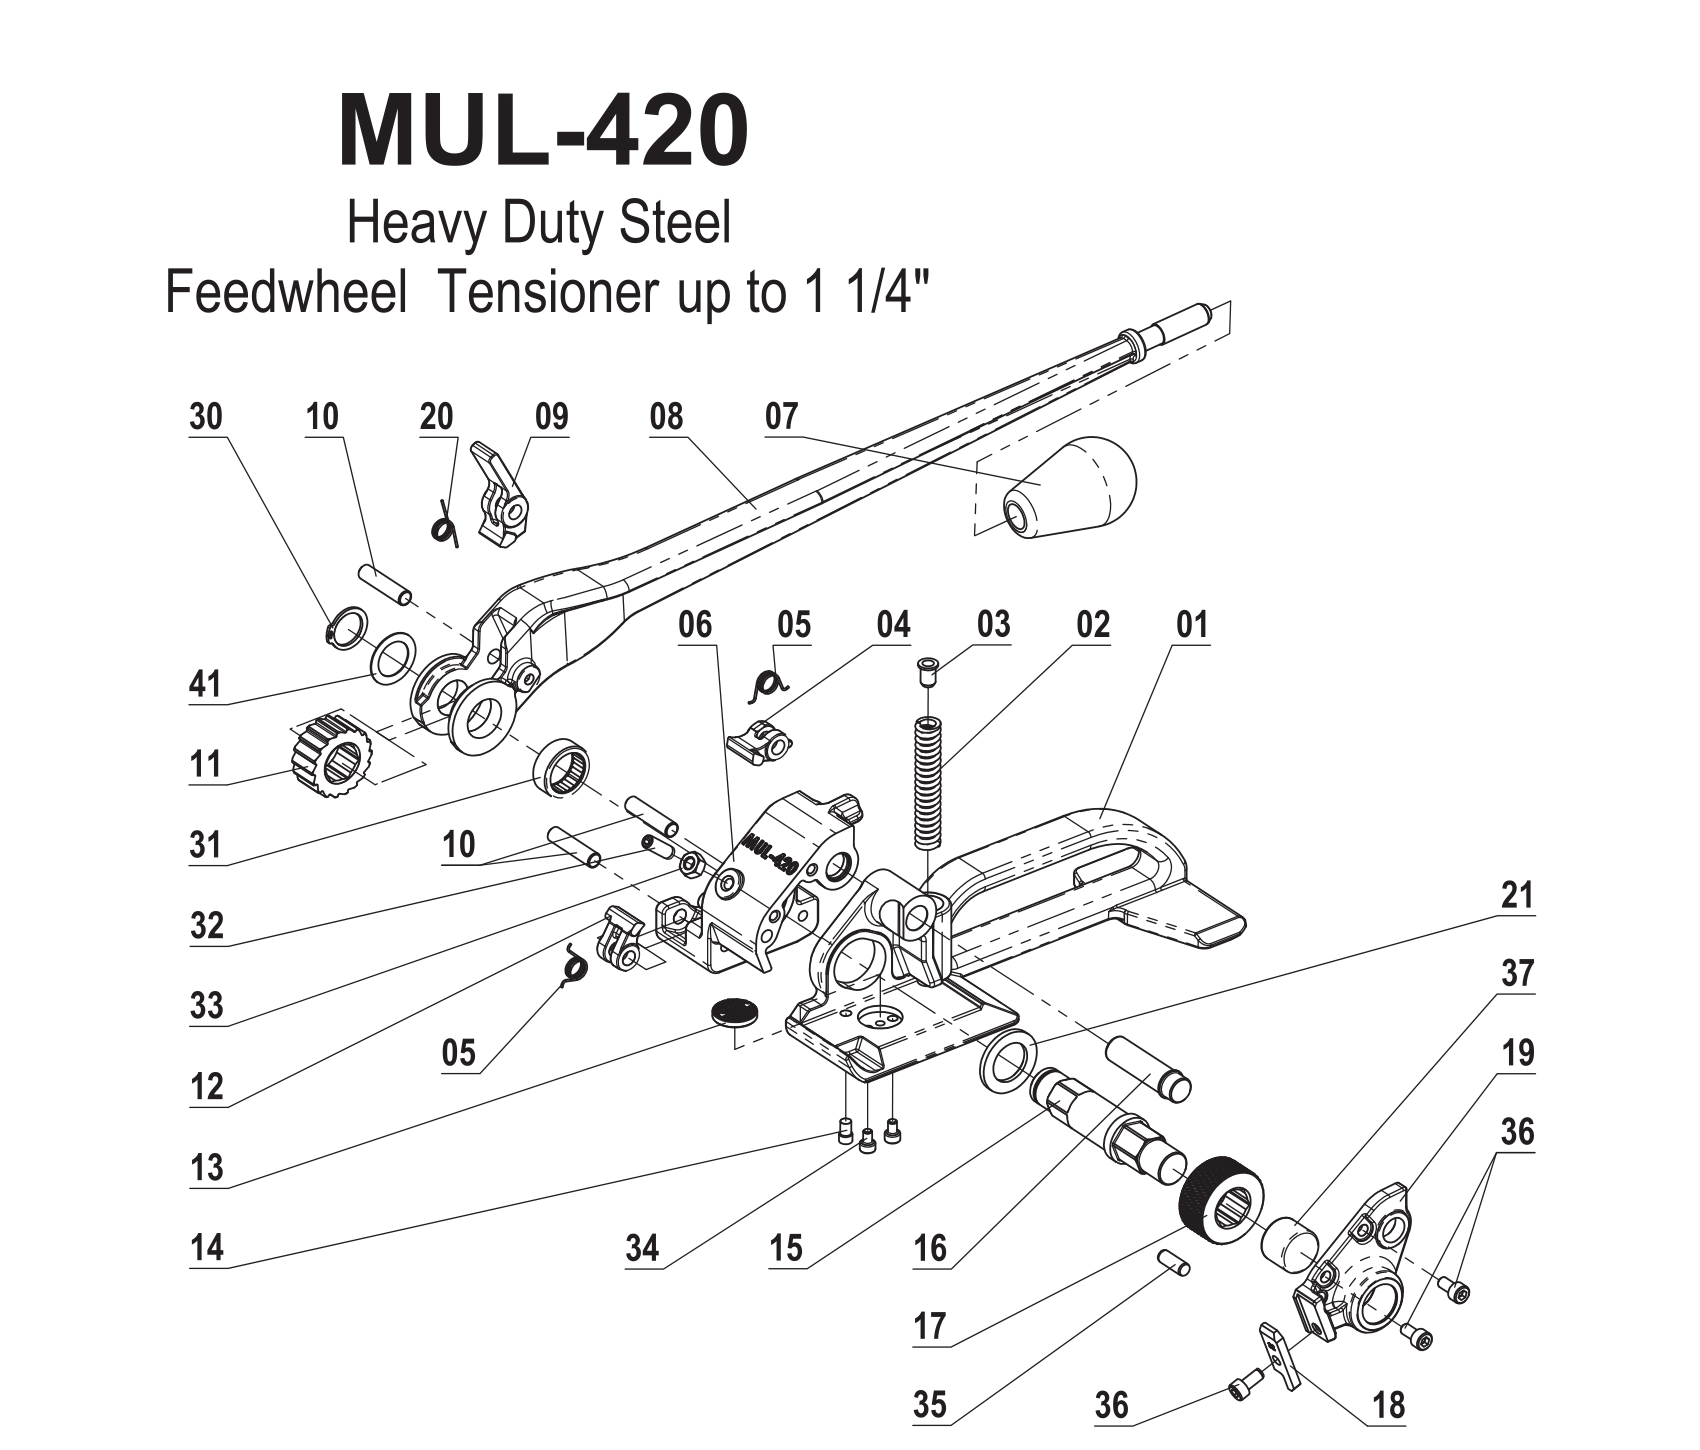 Parts For Mul 420 Heavy Duty Feedwheel Tensioner For Steel Strapping